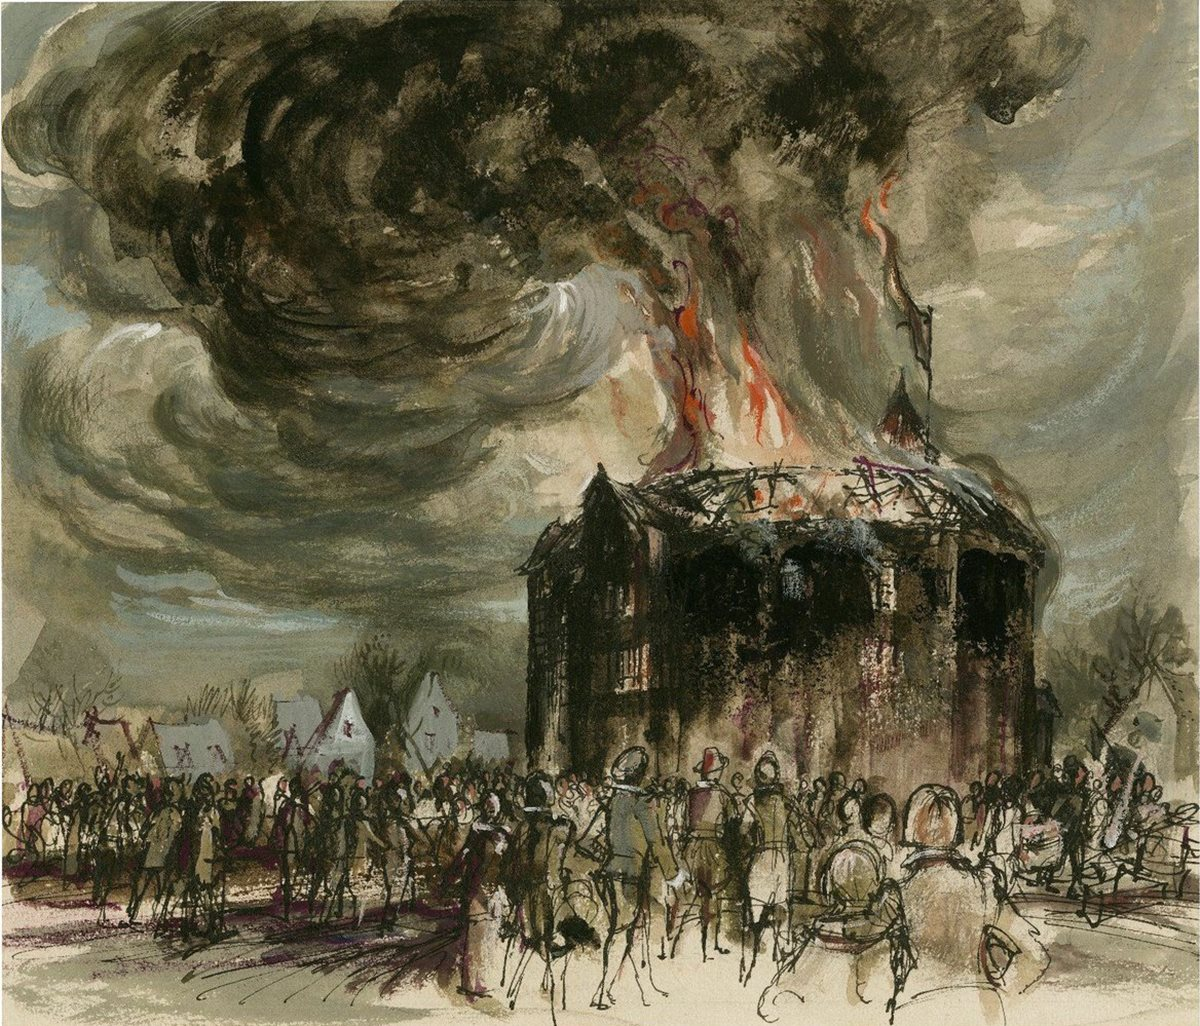 Globe Theatre Fire (Famous Painting) - On This Day